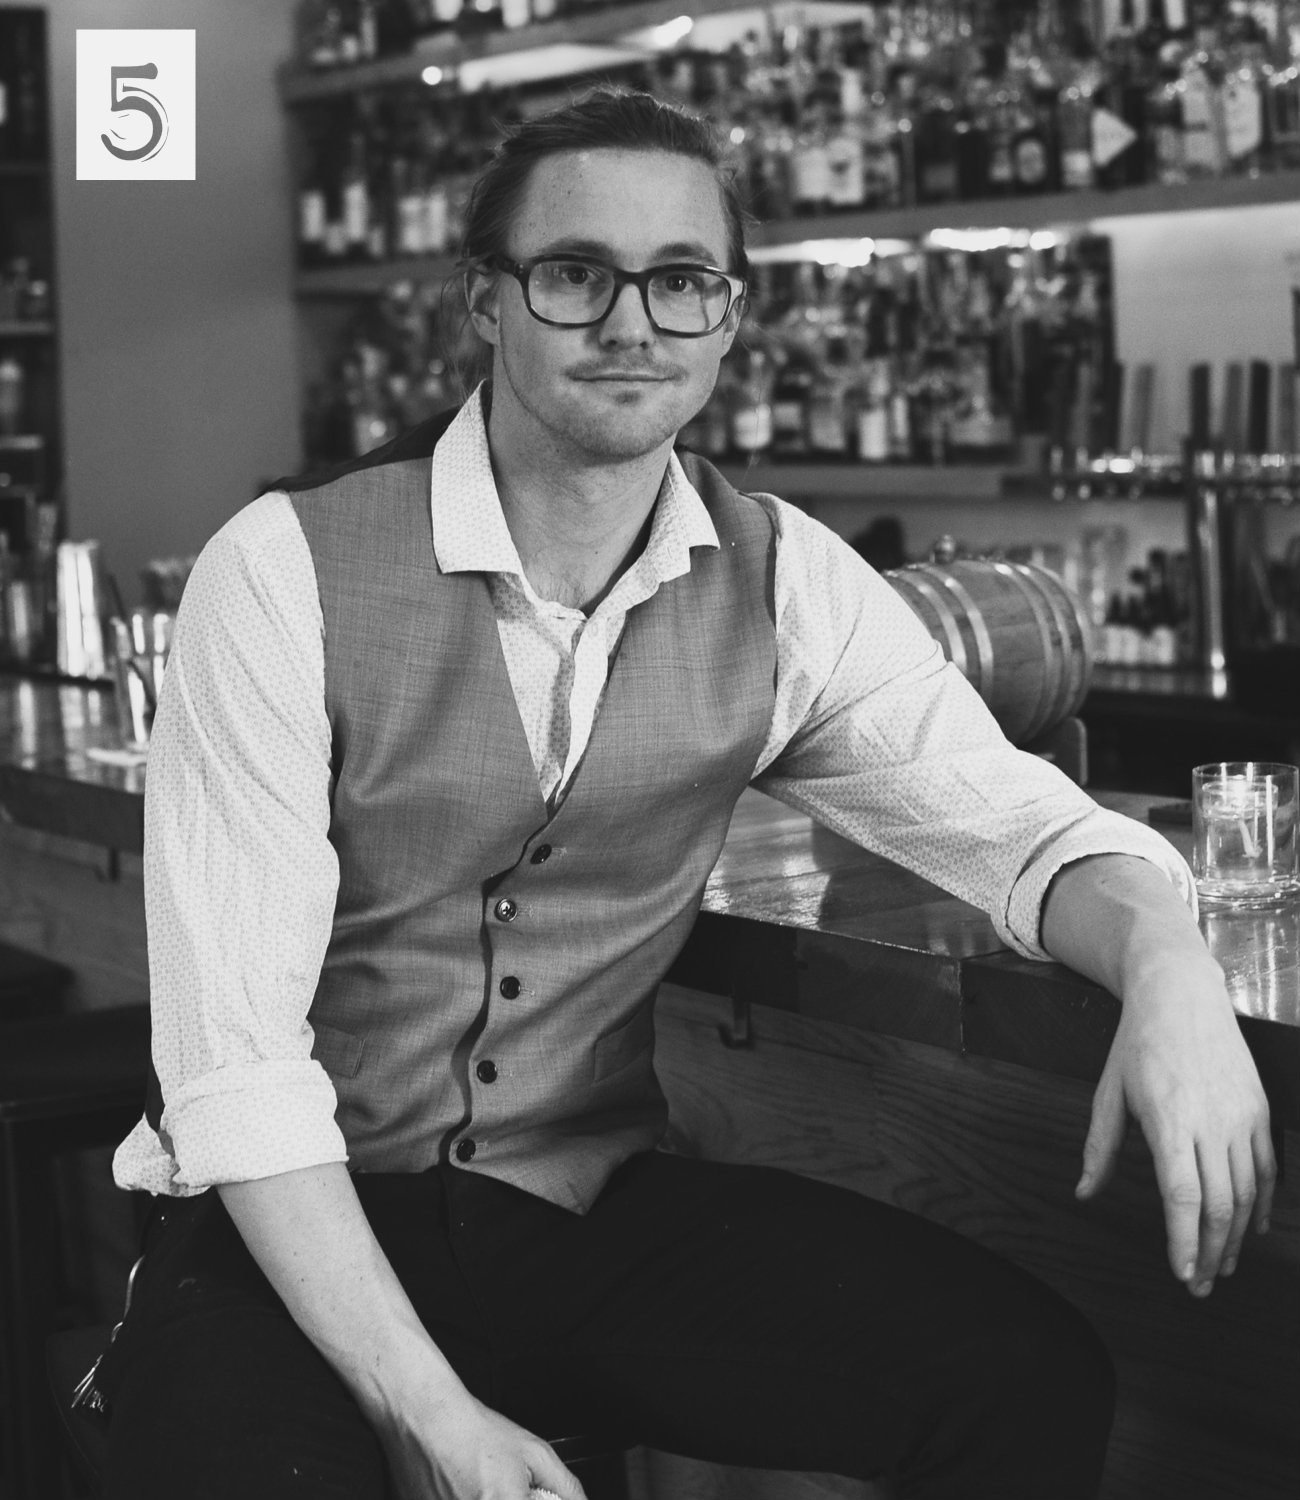 #5 - Say hello to John Ford, operating partner of The Littlefield in Northside. The Littlefield is this amazing bourbon bar & restaurant that we photographed. You should check it out. Seriously, check it out. / Image: Leah Zipperstein, Cincinnati Refined